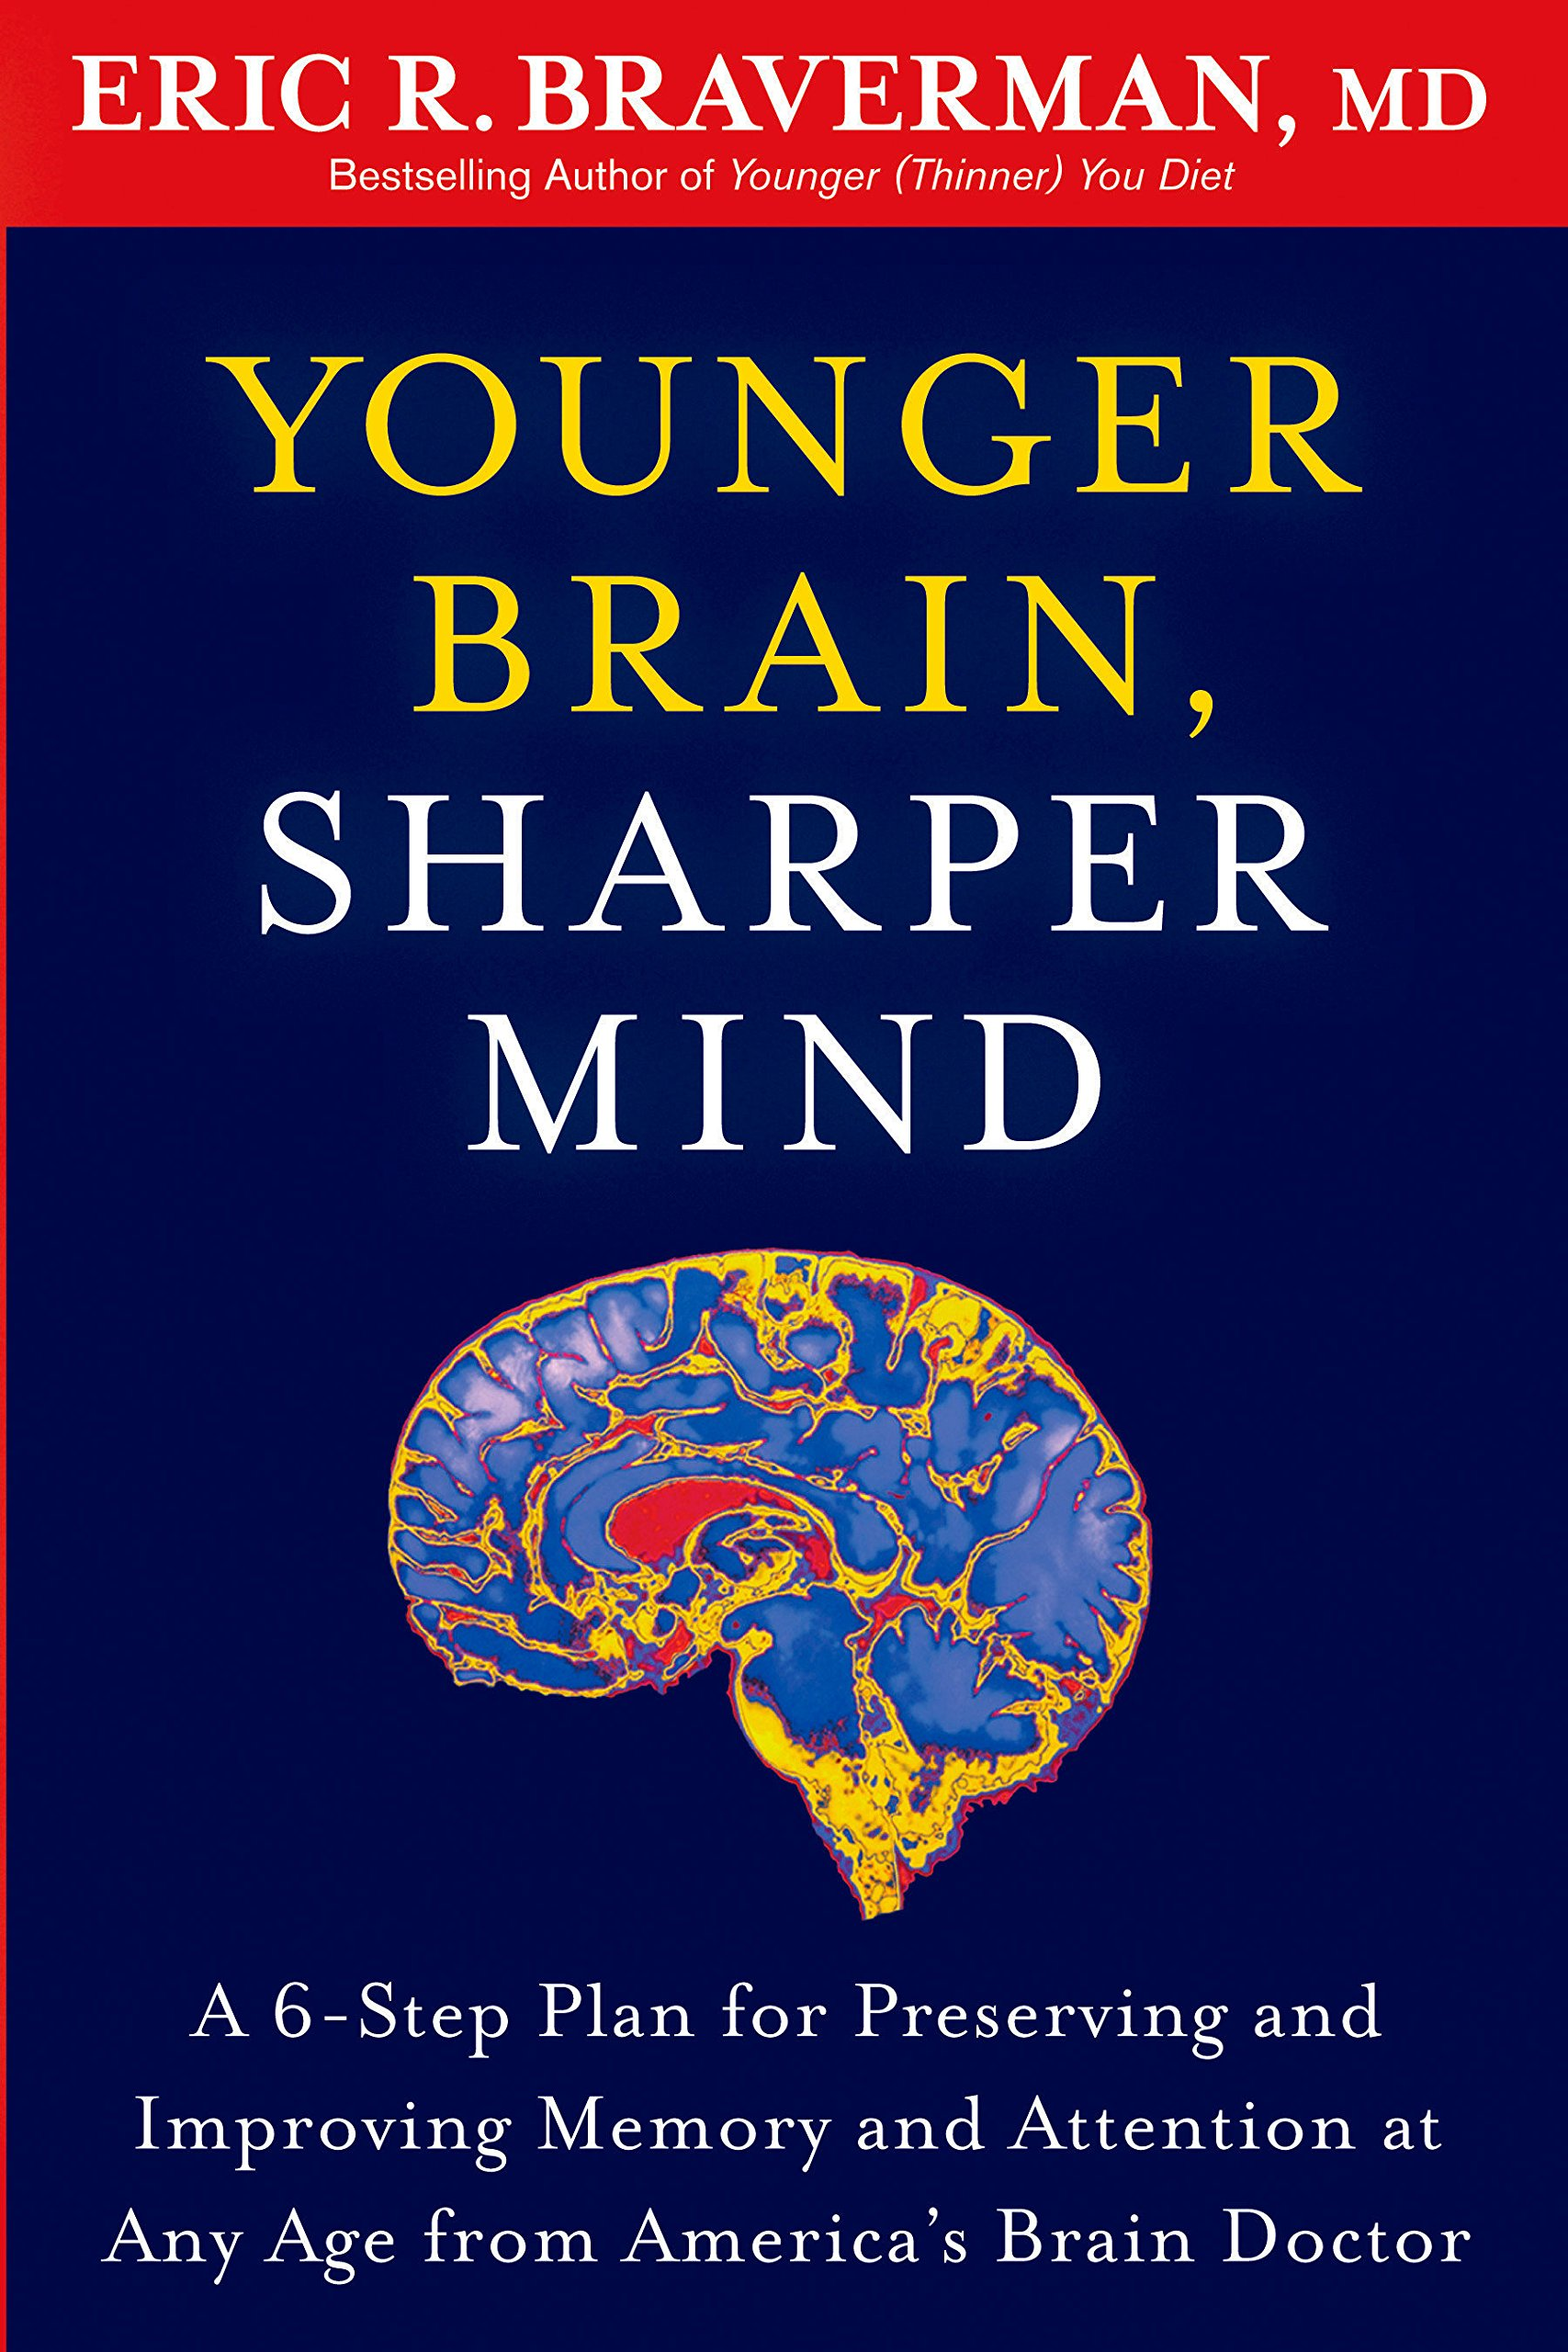 Younger Brain, Sharper Mind: A 6-Step Plan for Preserving and Improving Memory and Attention at Any Age from America's…